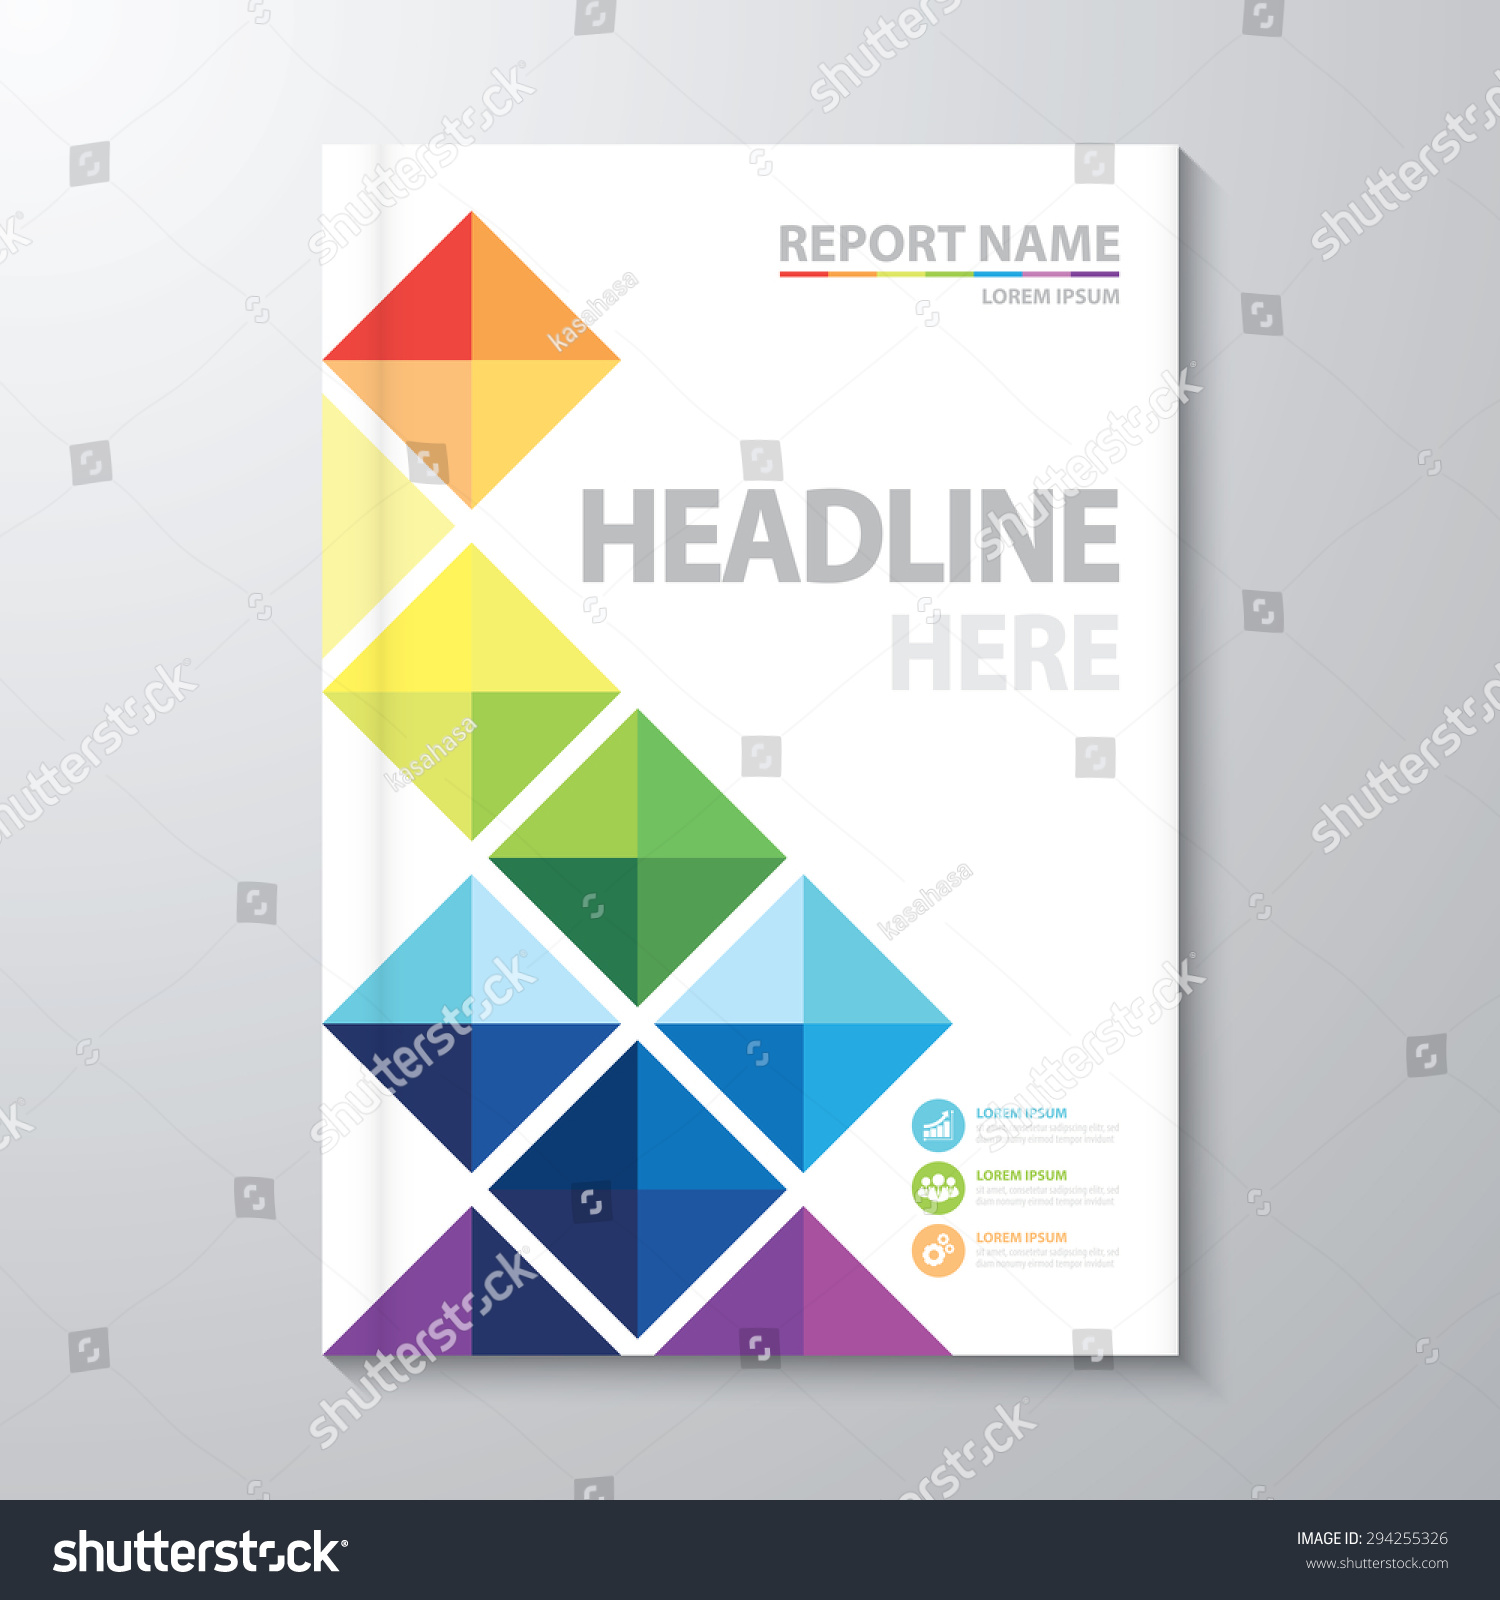 Report Cover Template Free Cover Page TemplateReport Cover – Free Report Cover Templates